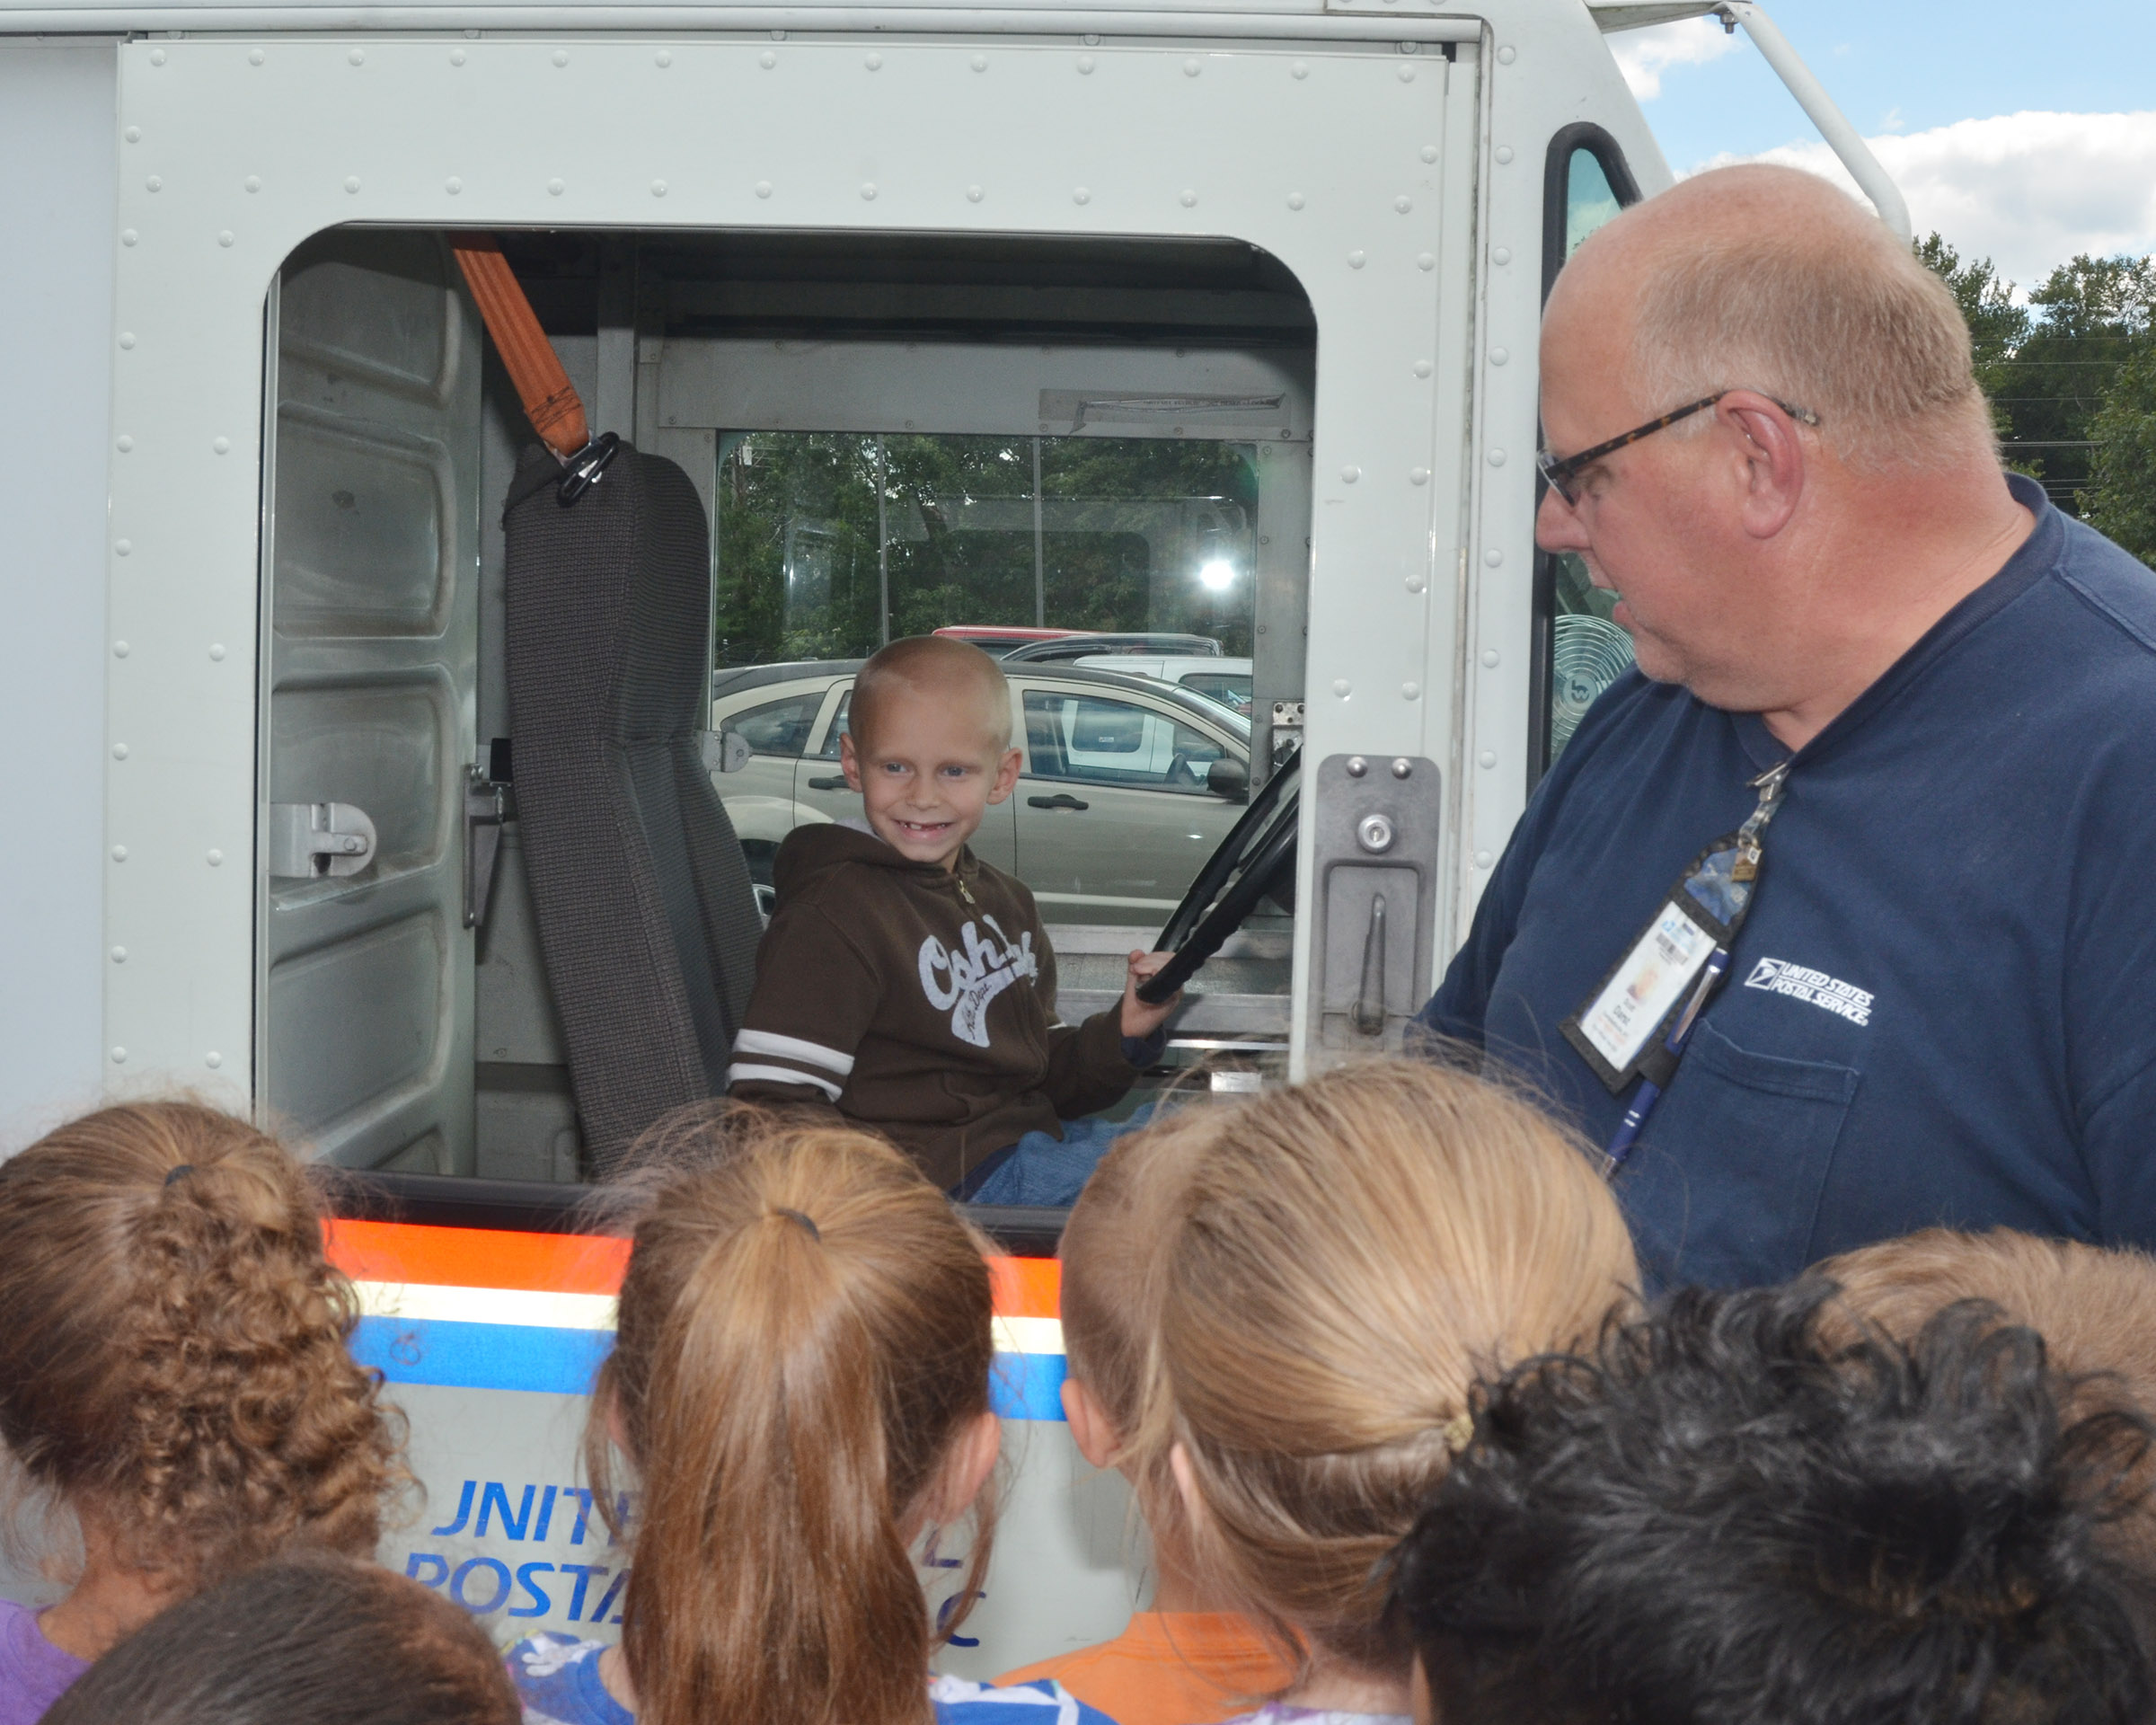 Campbellsville Post Office employee Scott Darst talks to CES second-graders about how drivers deliver mail, as Chase Gabbert sits in the driver's seat.